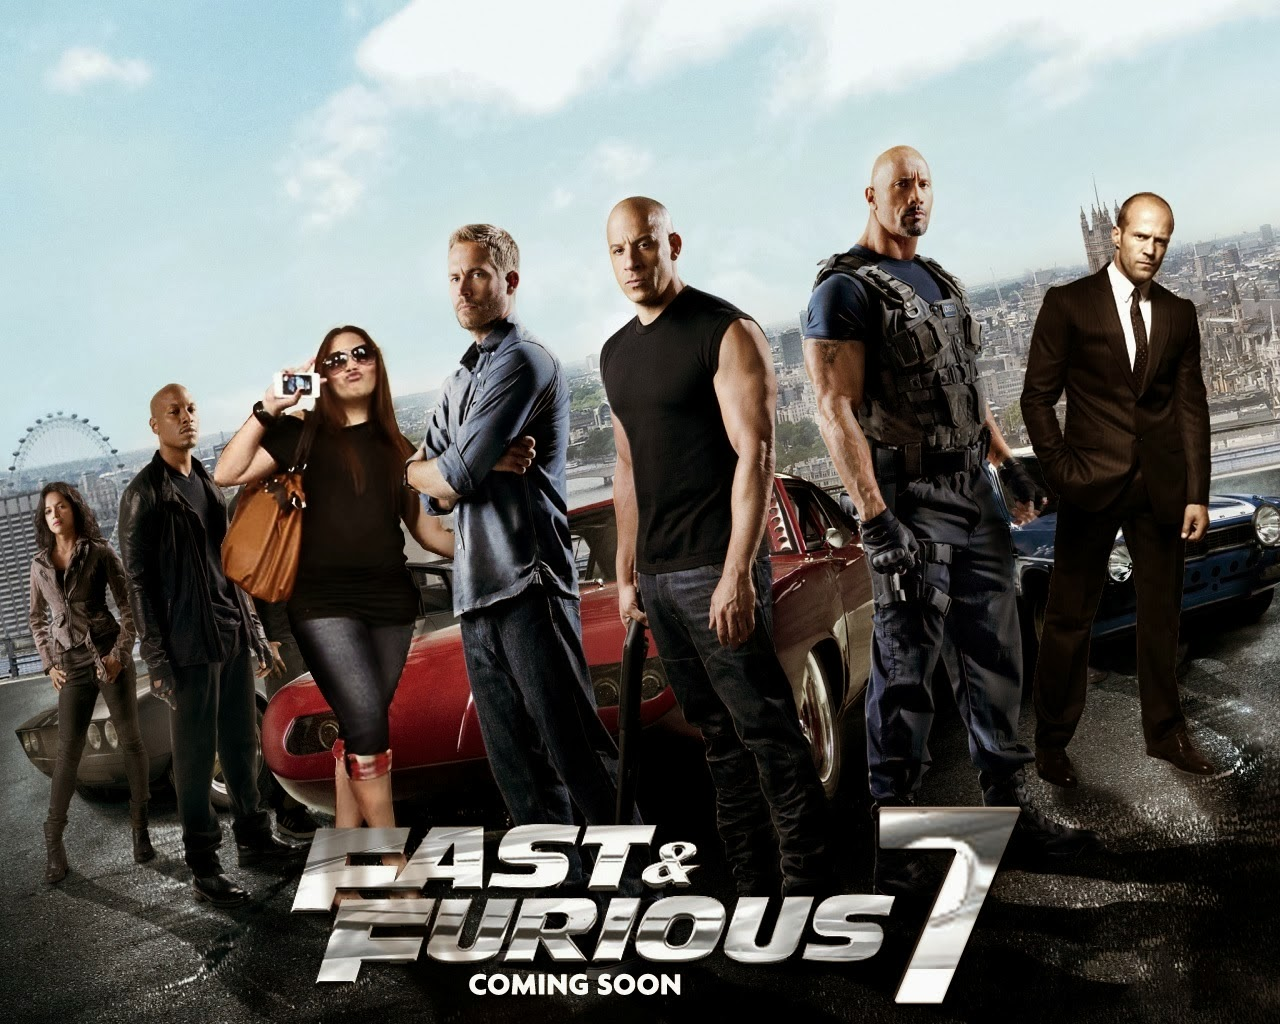 Fast and Furious 7 Posters